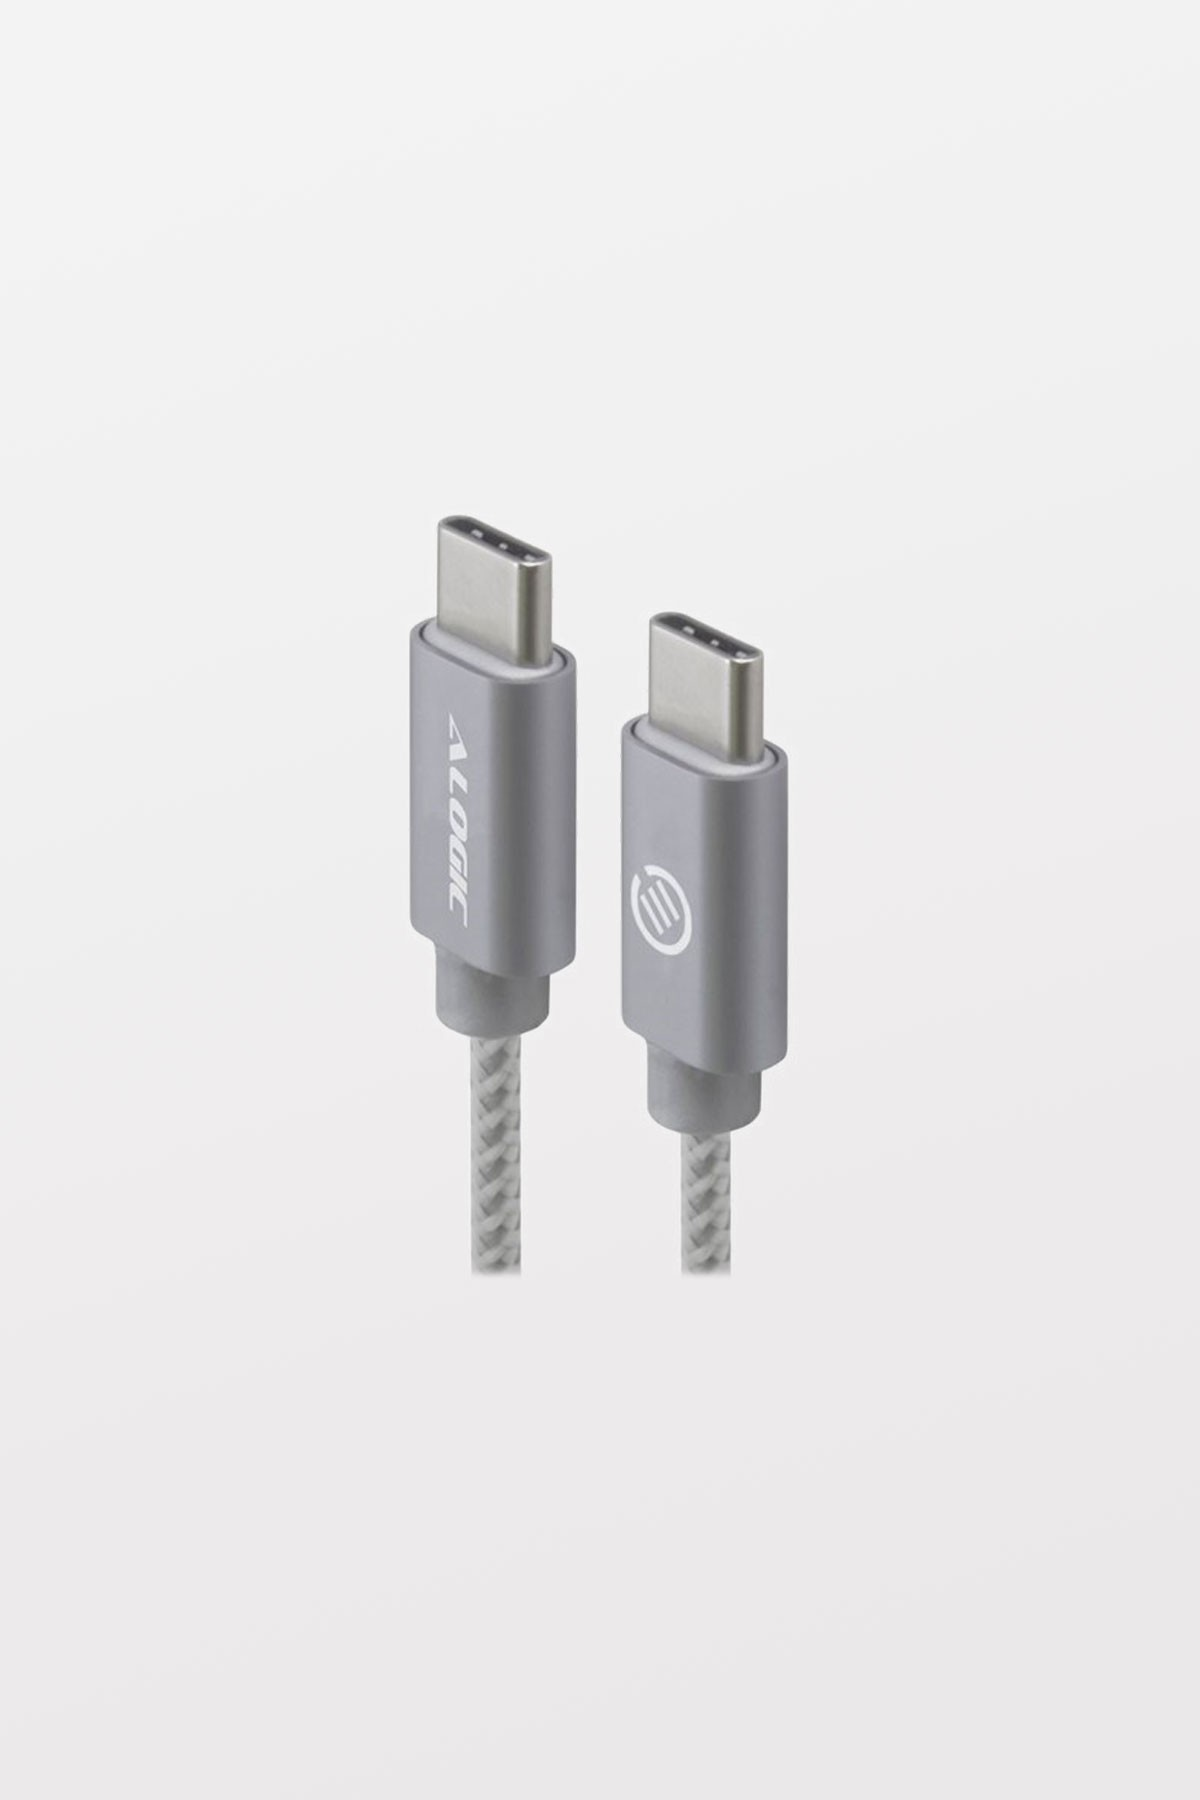 ALOGIC USB-C to USB-C Cable - USB 2.0 - Space Grey - 2m